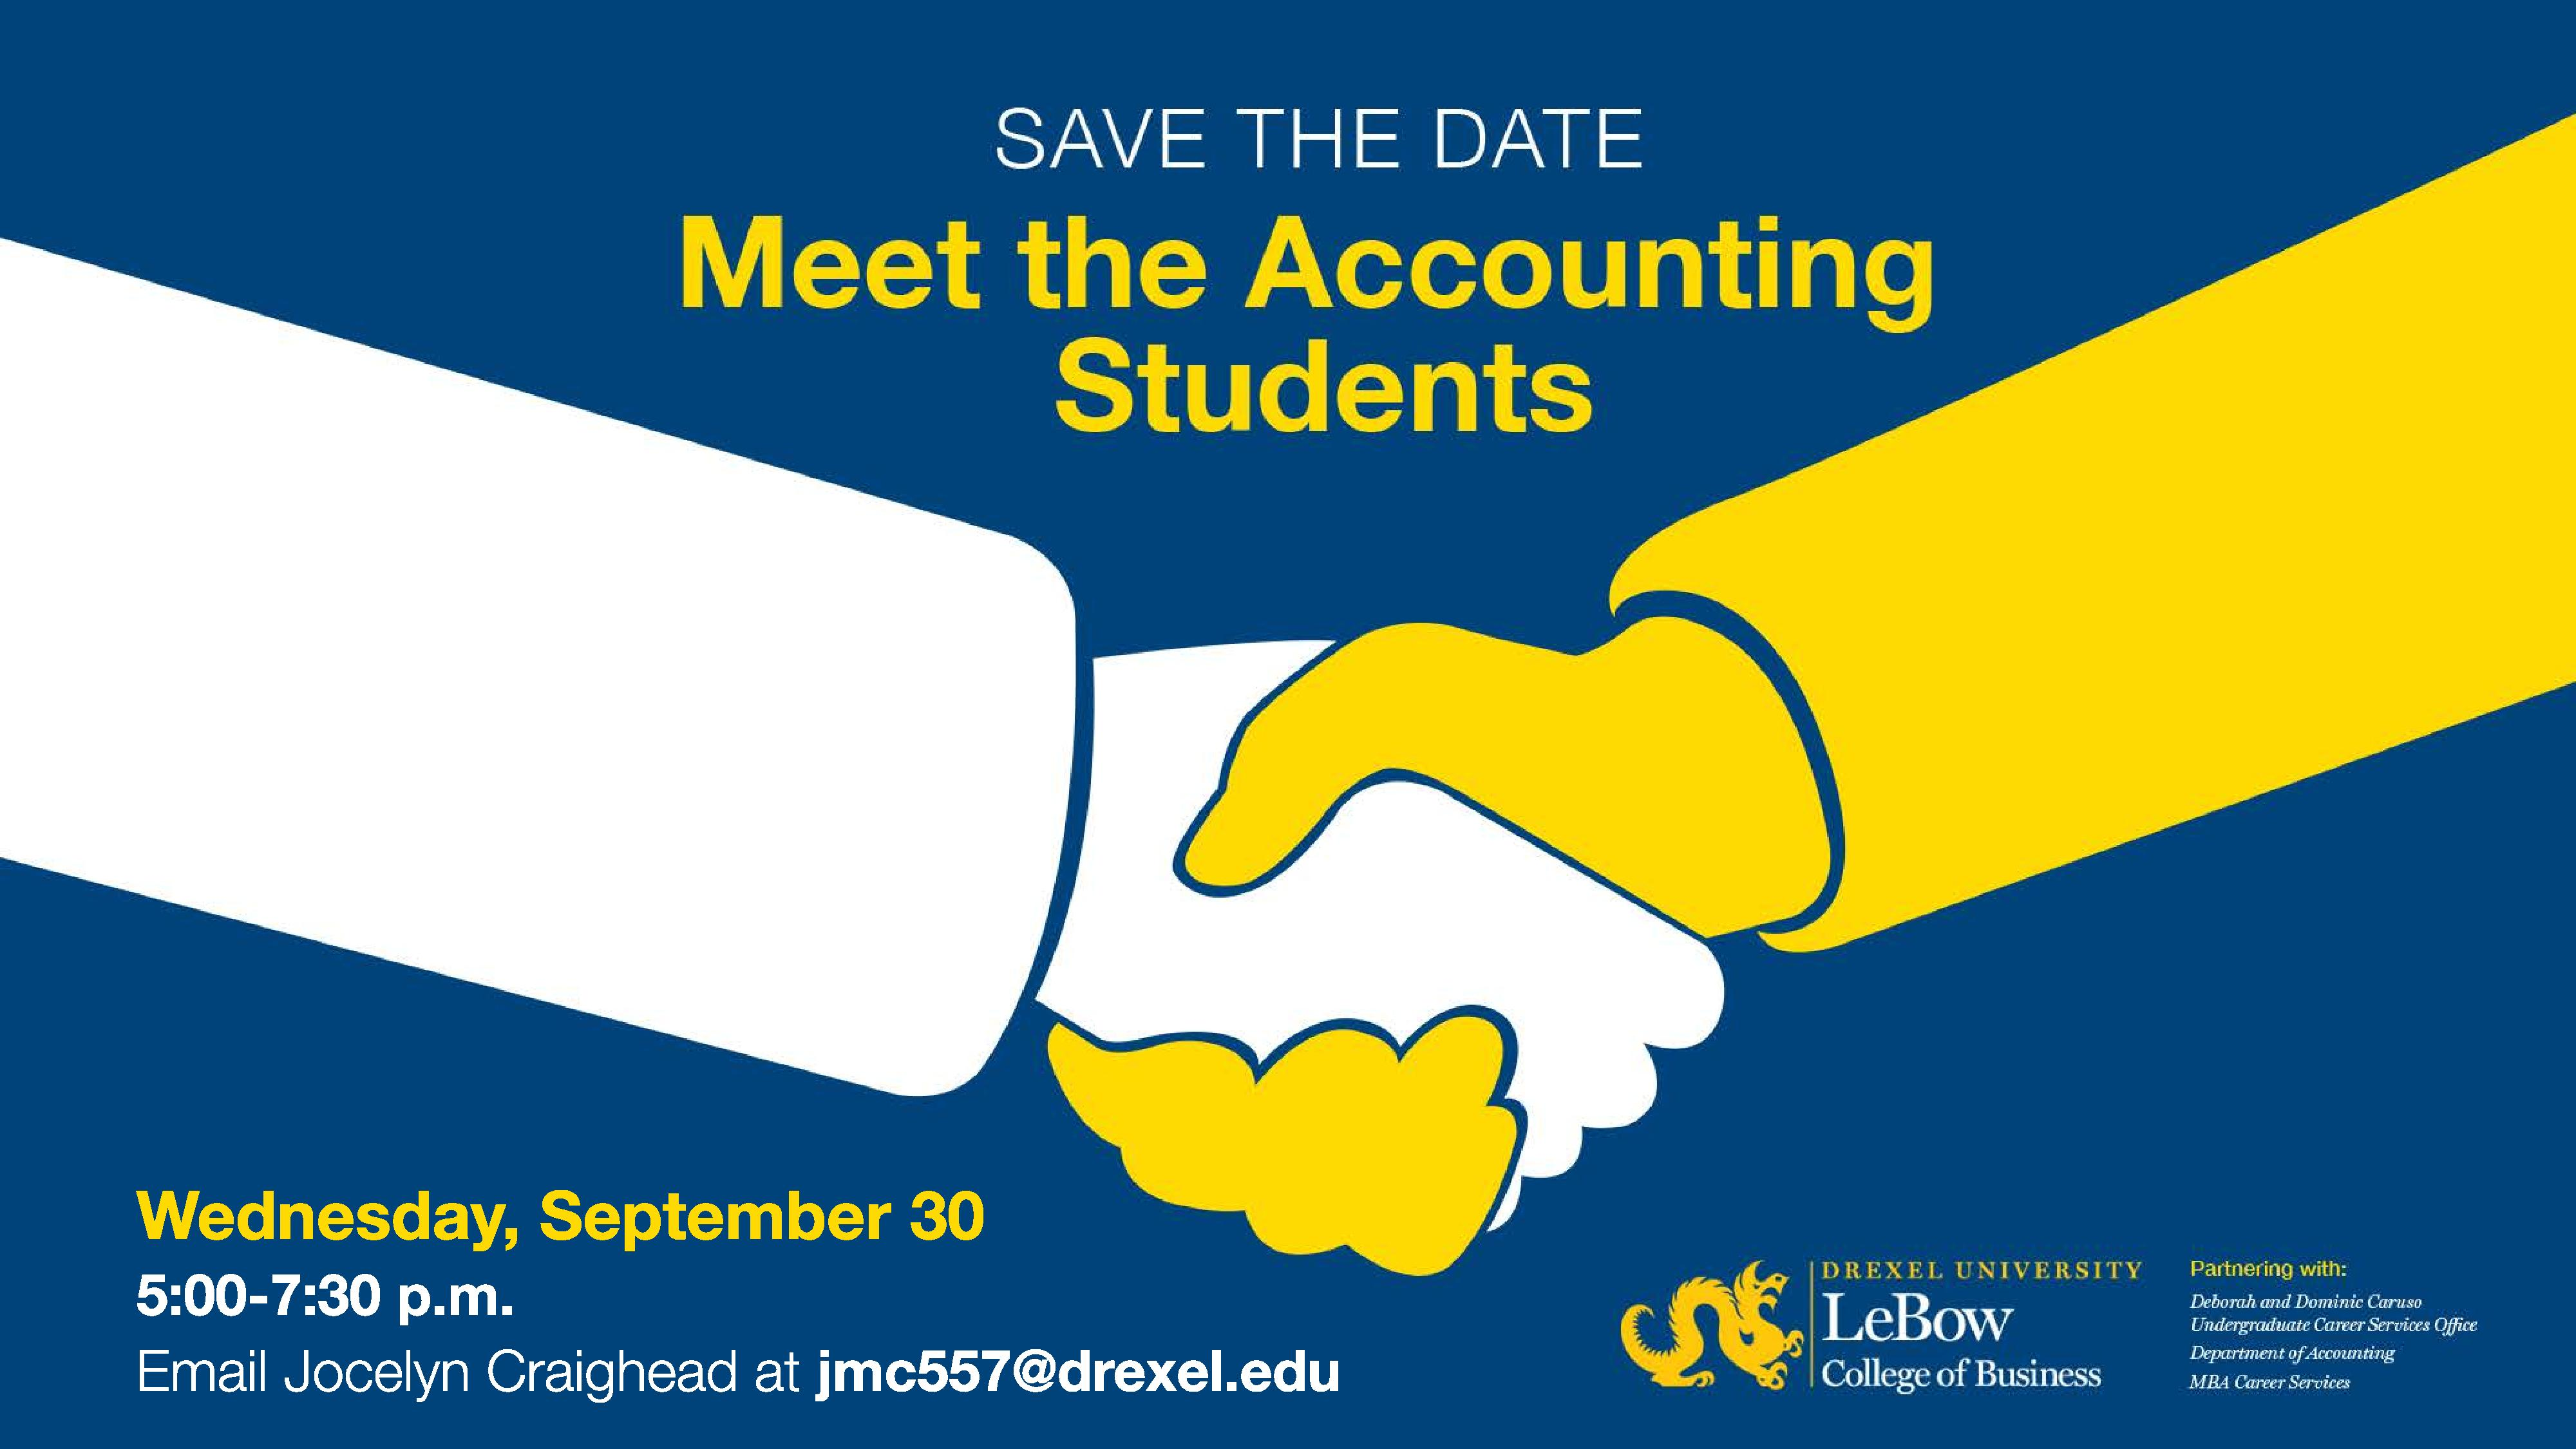 Meet the Accounting Students